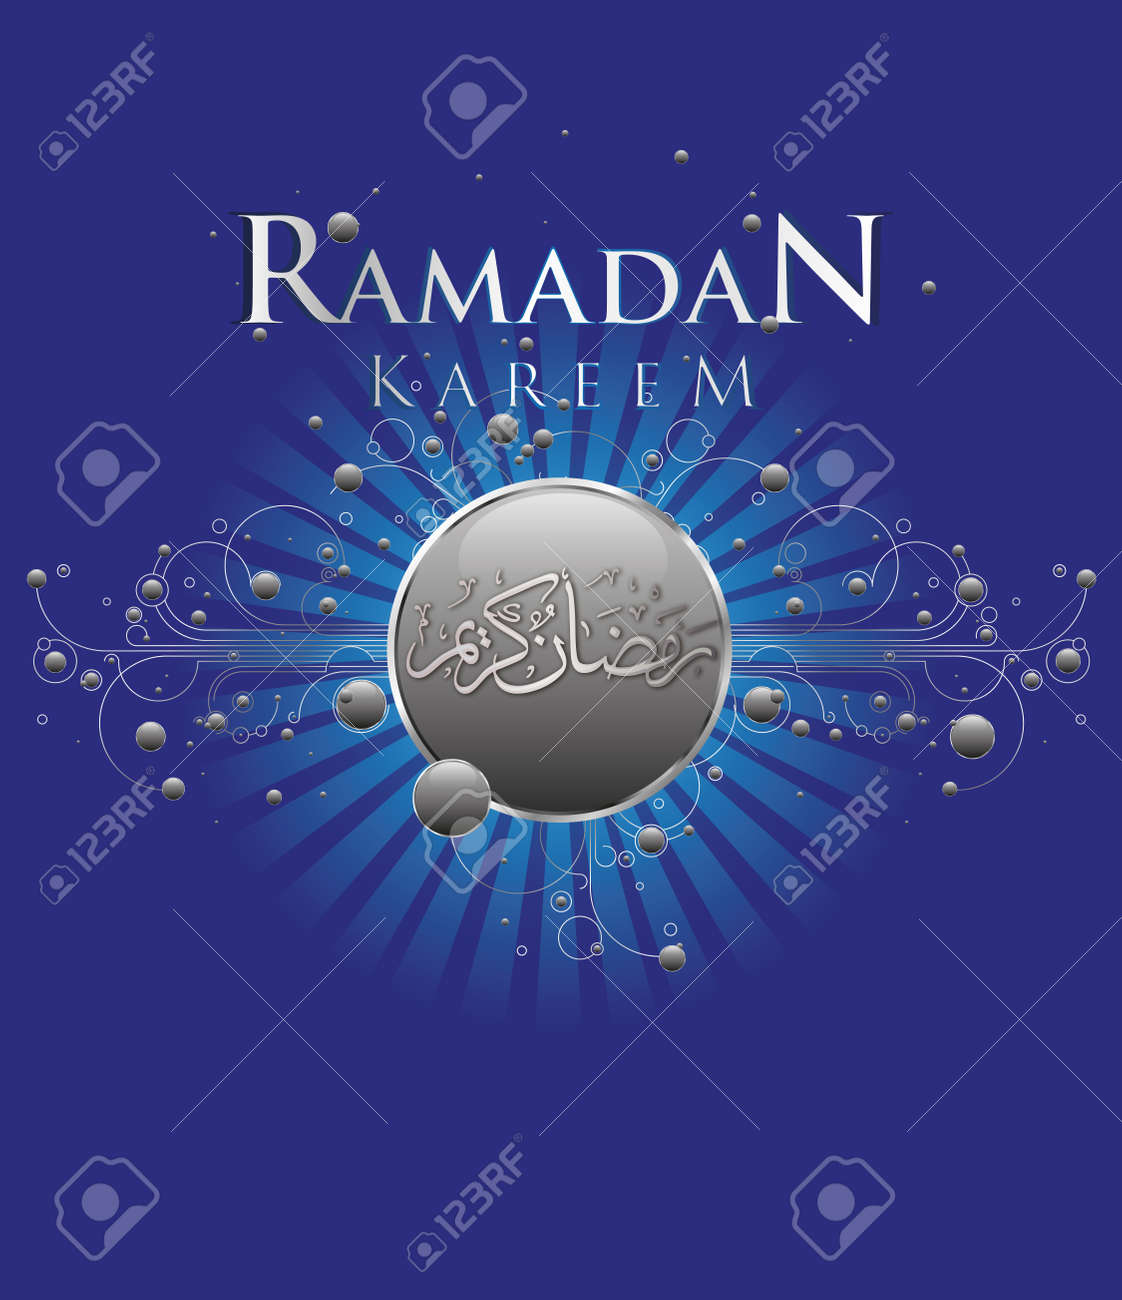 Abstract Ramadan Kareem celebration design with moder ornamentation and calligraphy Stock Vector - 10037968